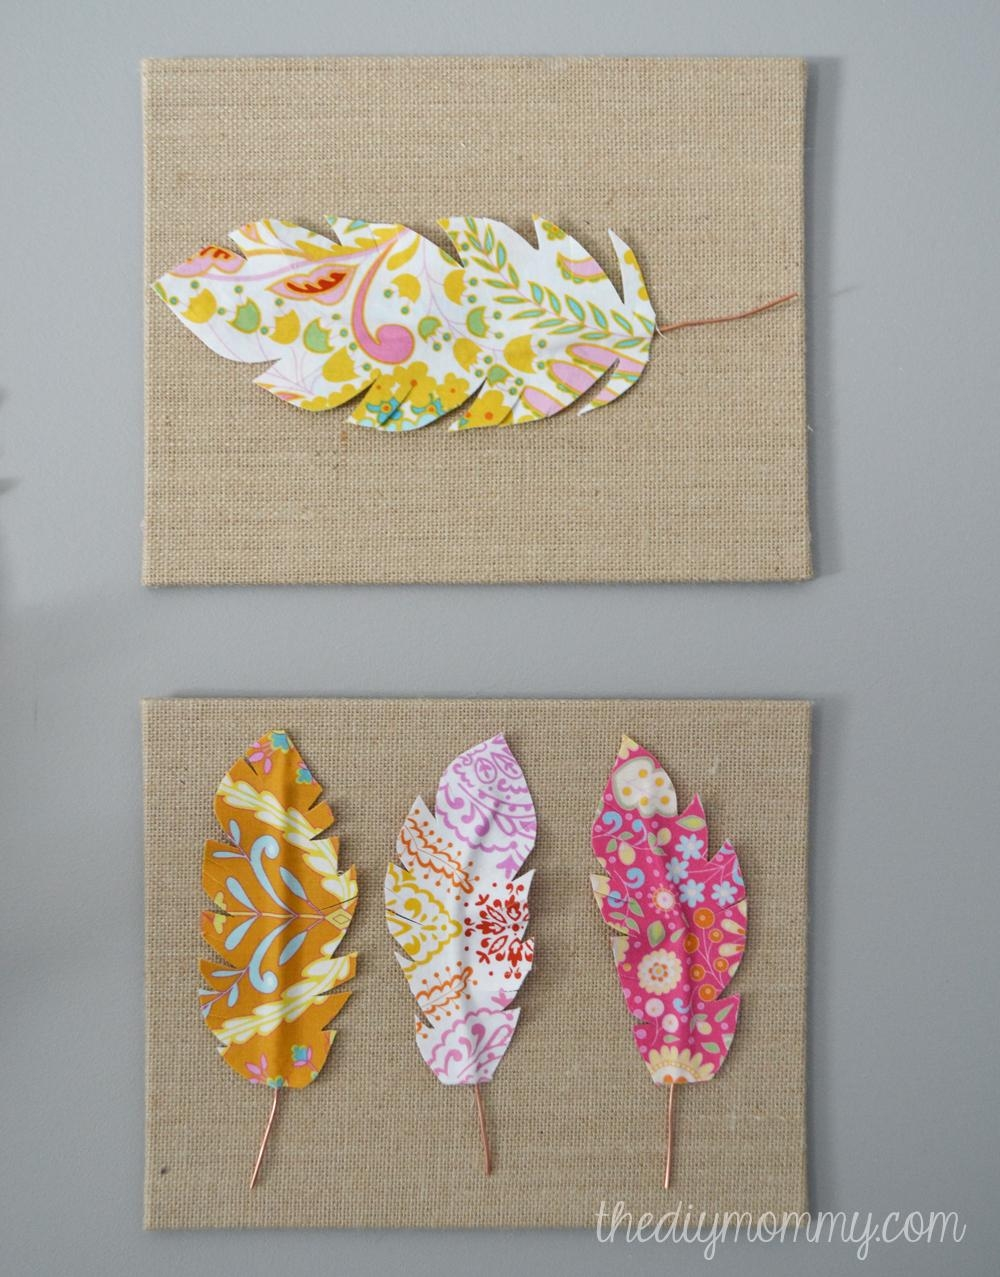 Make Fabric Feather Wall Art | The Diy Mommy Regarding Fabric Canvas Wall Art (Image 15 of 20)